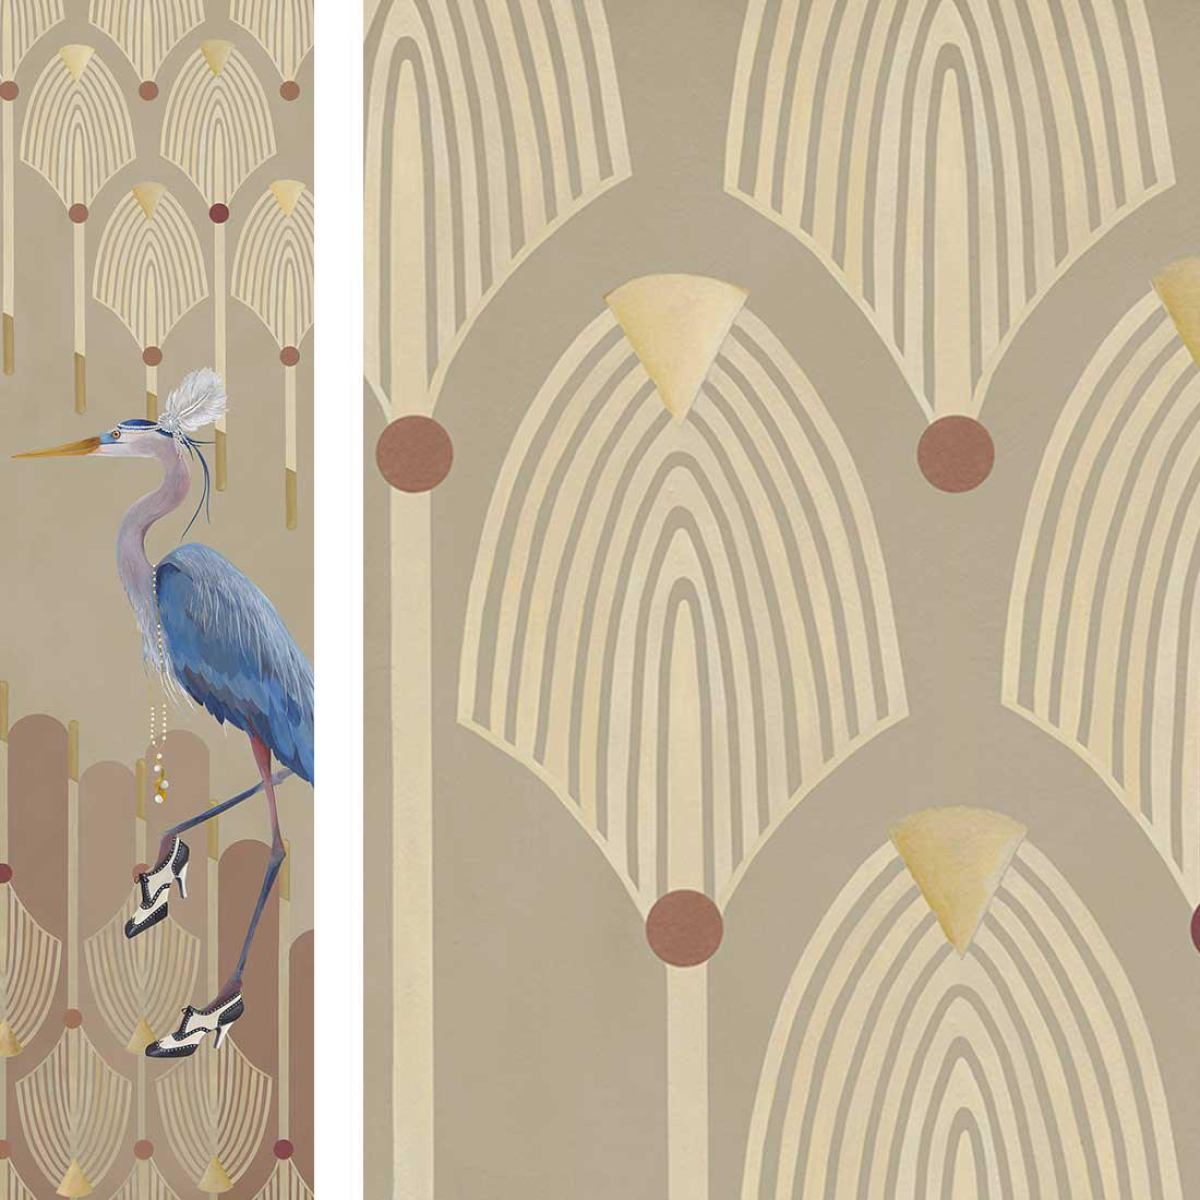 Wallpaper with heron image, beige background